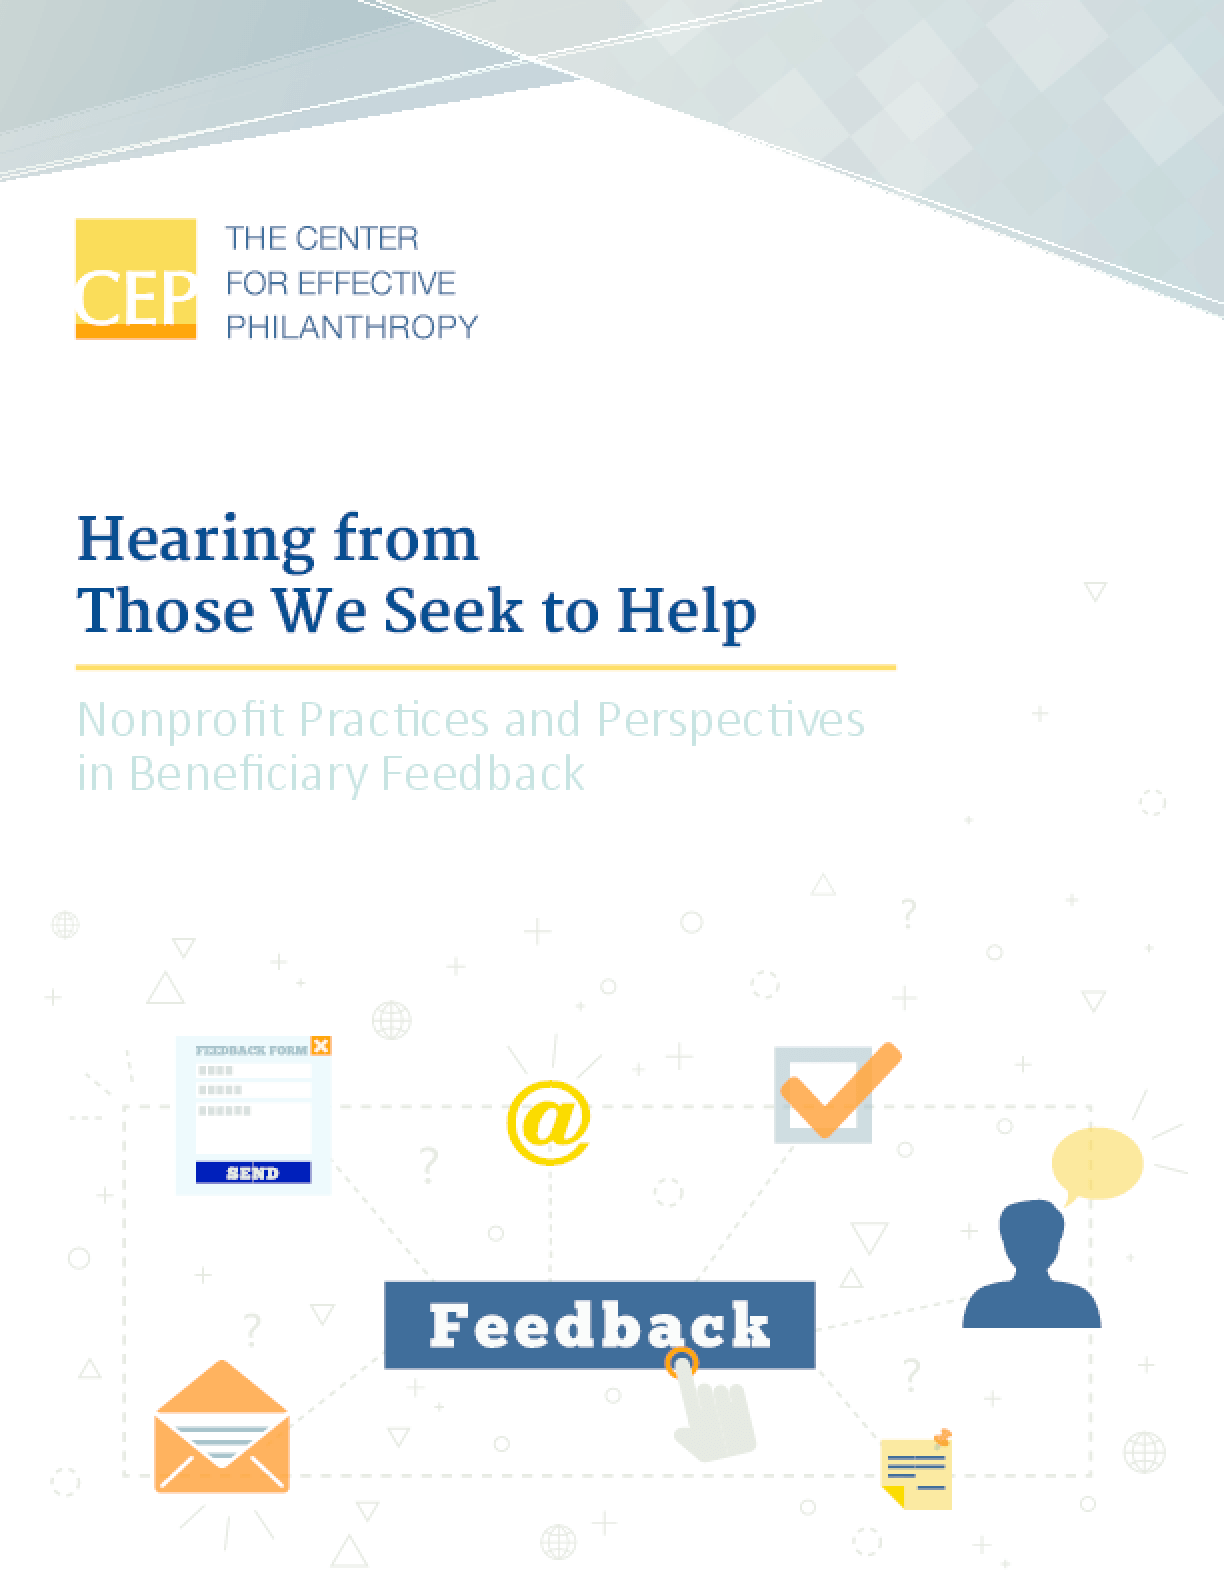 Hearing from Those We Seek to Help: Nonprofit Practices and Perspectives in Beneficiary Feedback